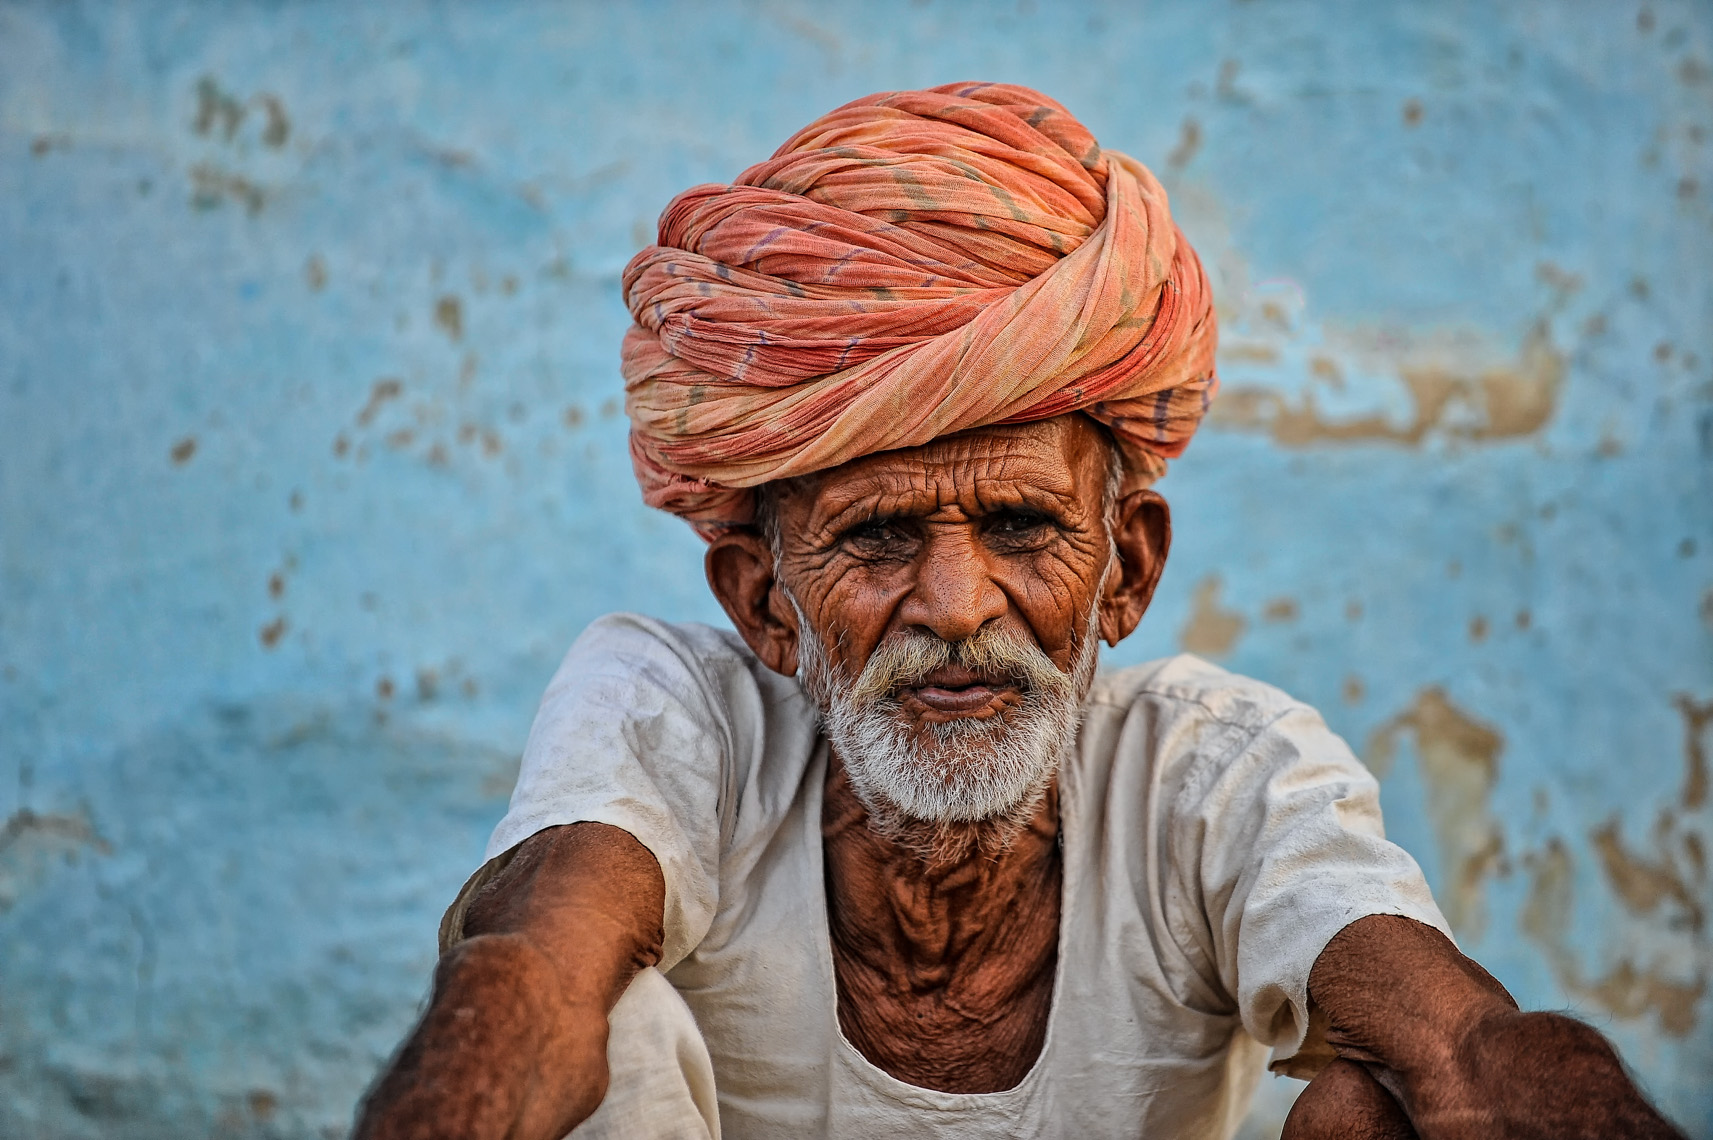 Village Headman, Rajasthan